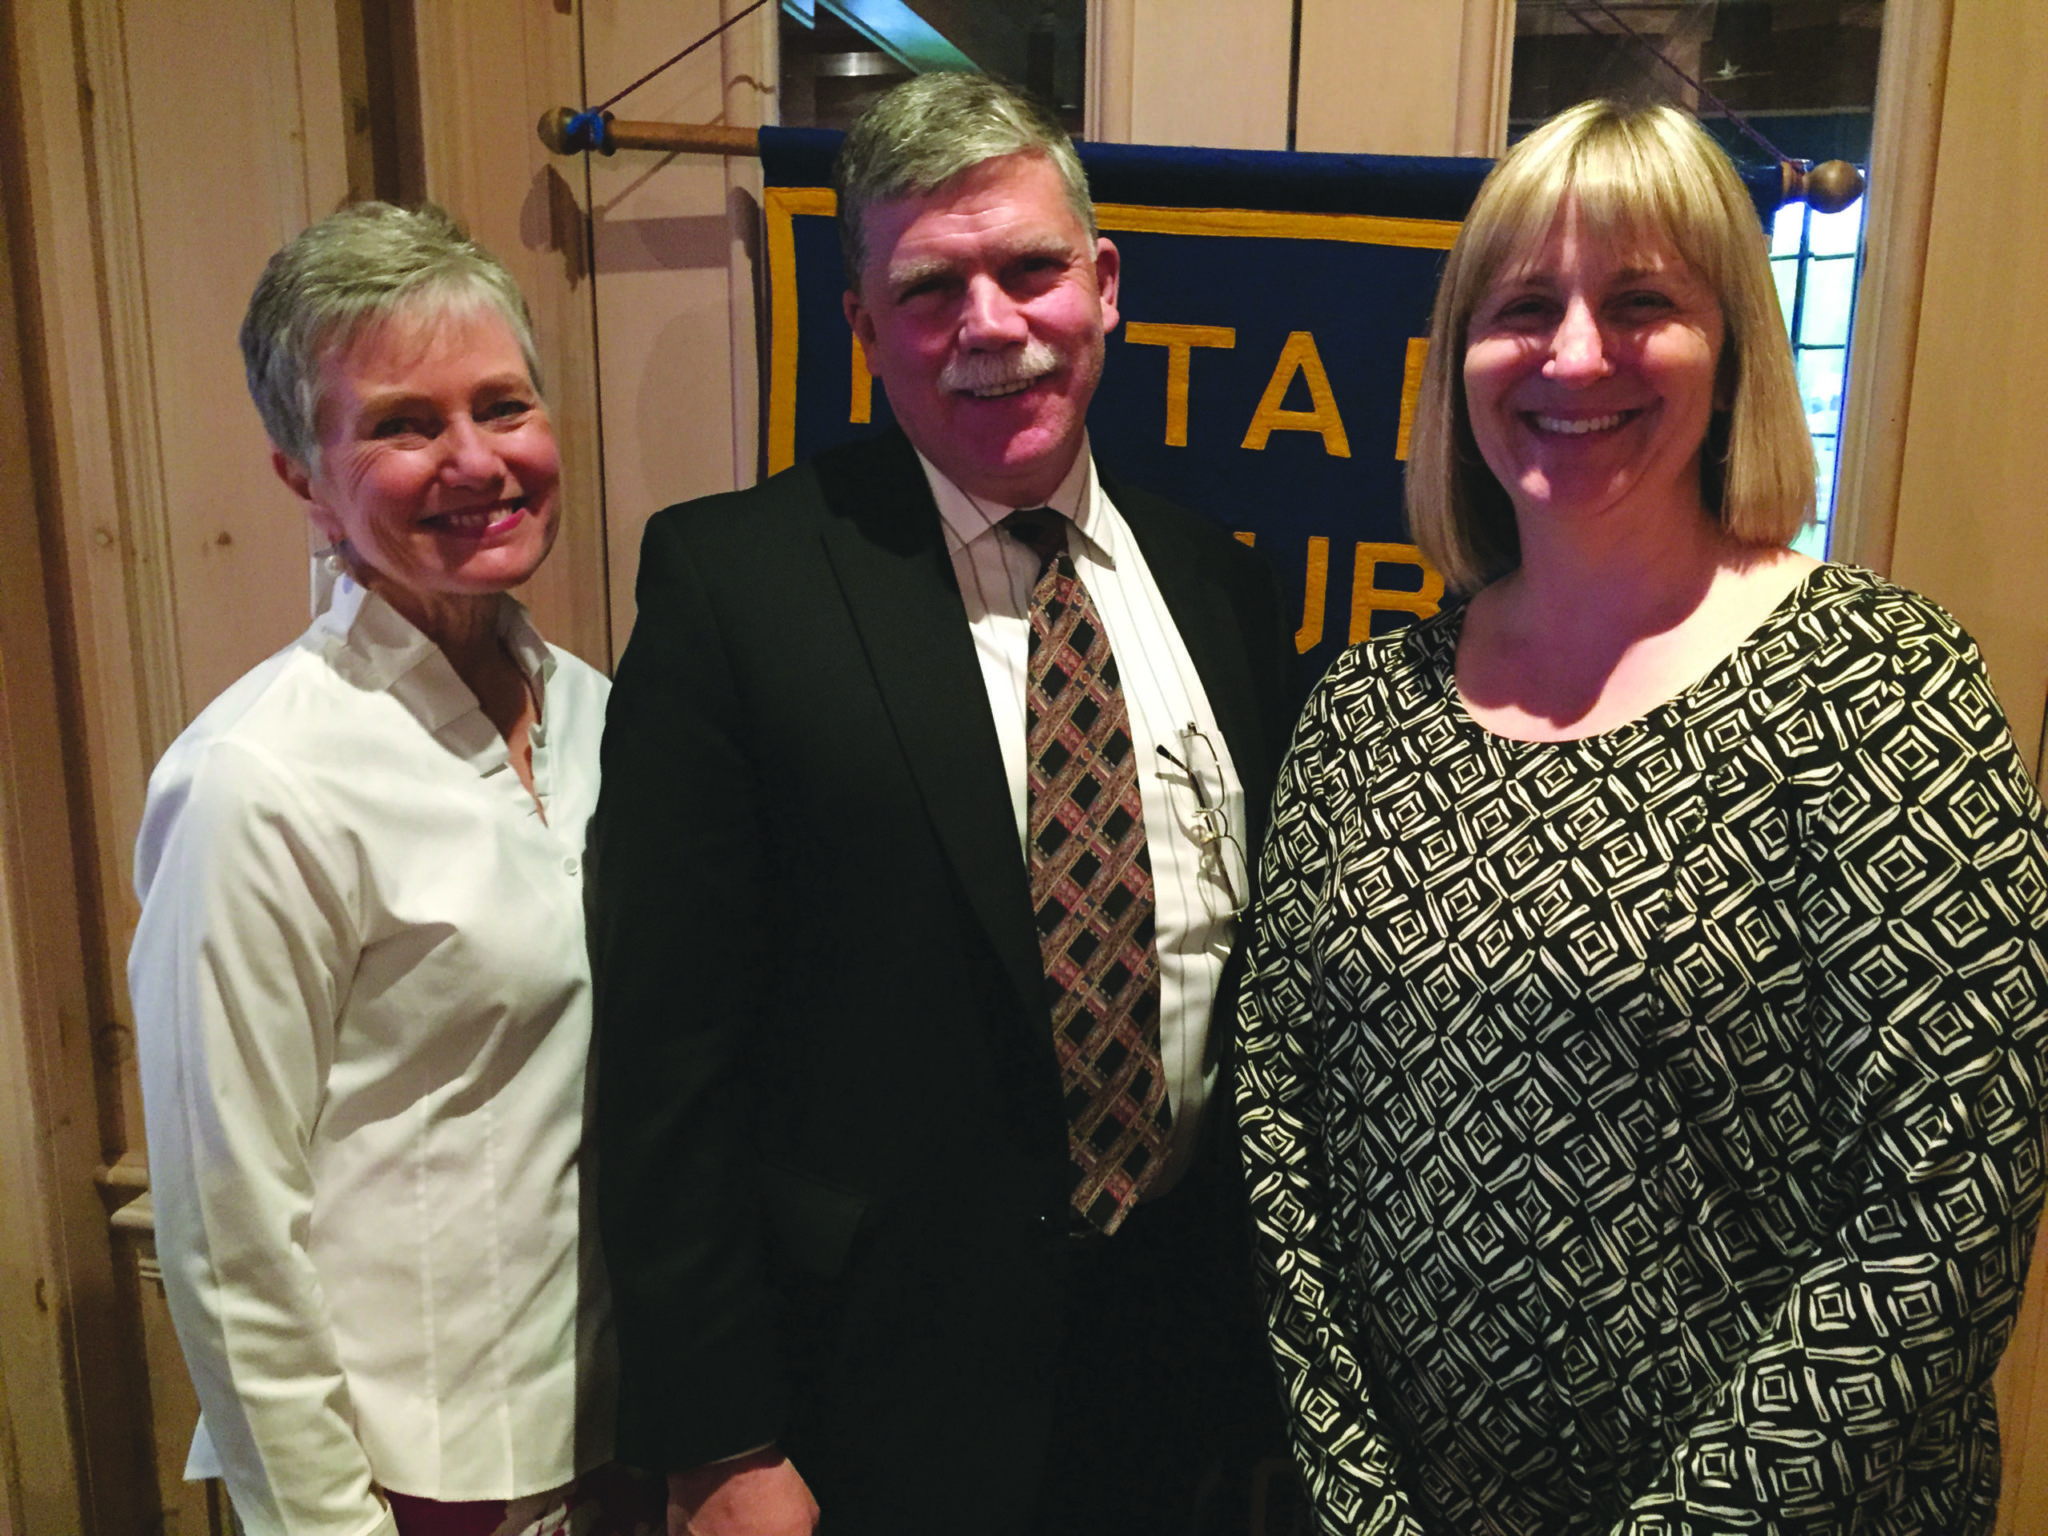 Education Foundation director speaks to Rotary